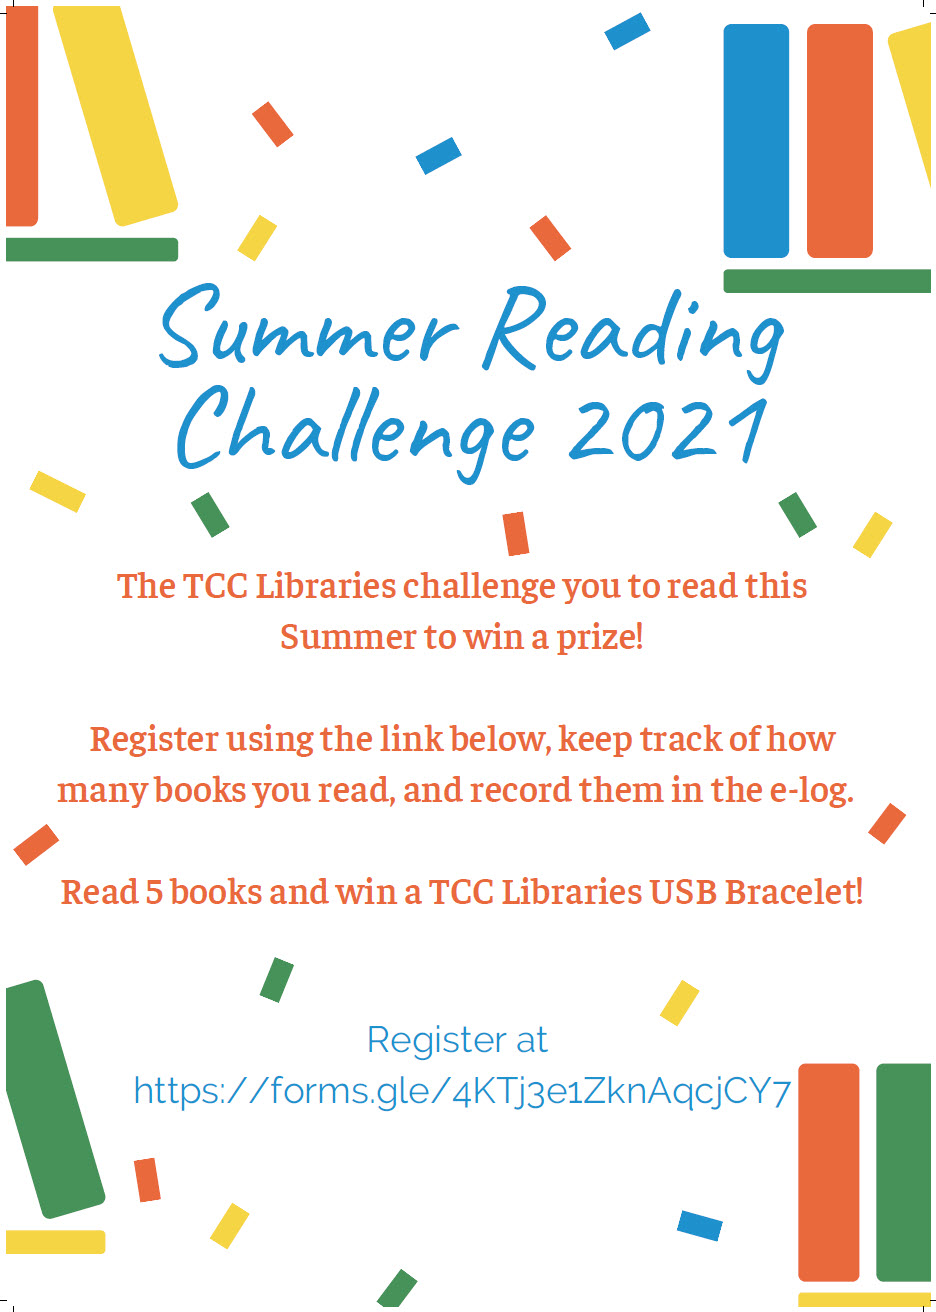 Summer Reading Challenge 2021 - Register using the link below, keep track of how many books you read, and record them in the e-log. Read 5 books and win a USB bracelet.